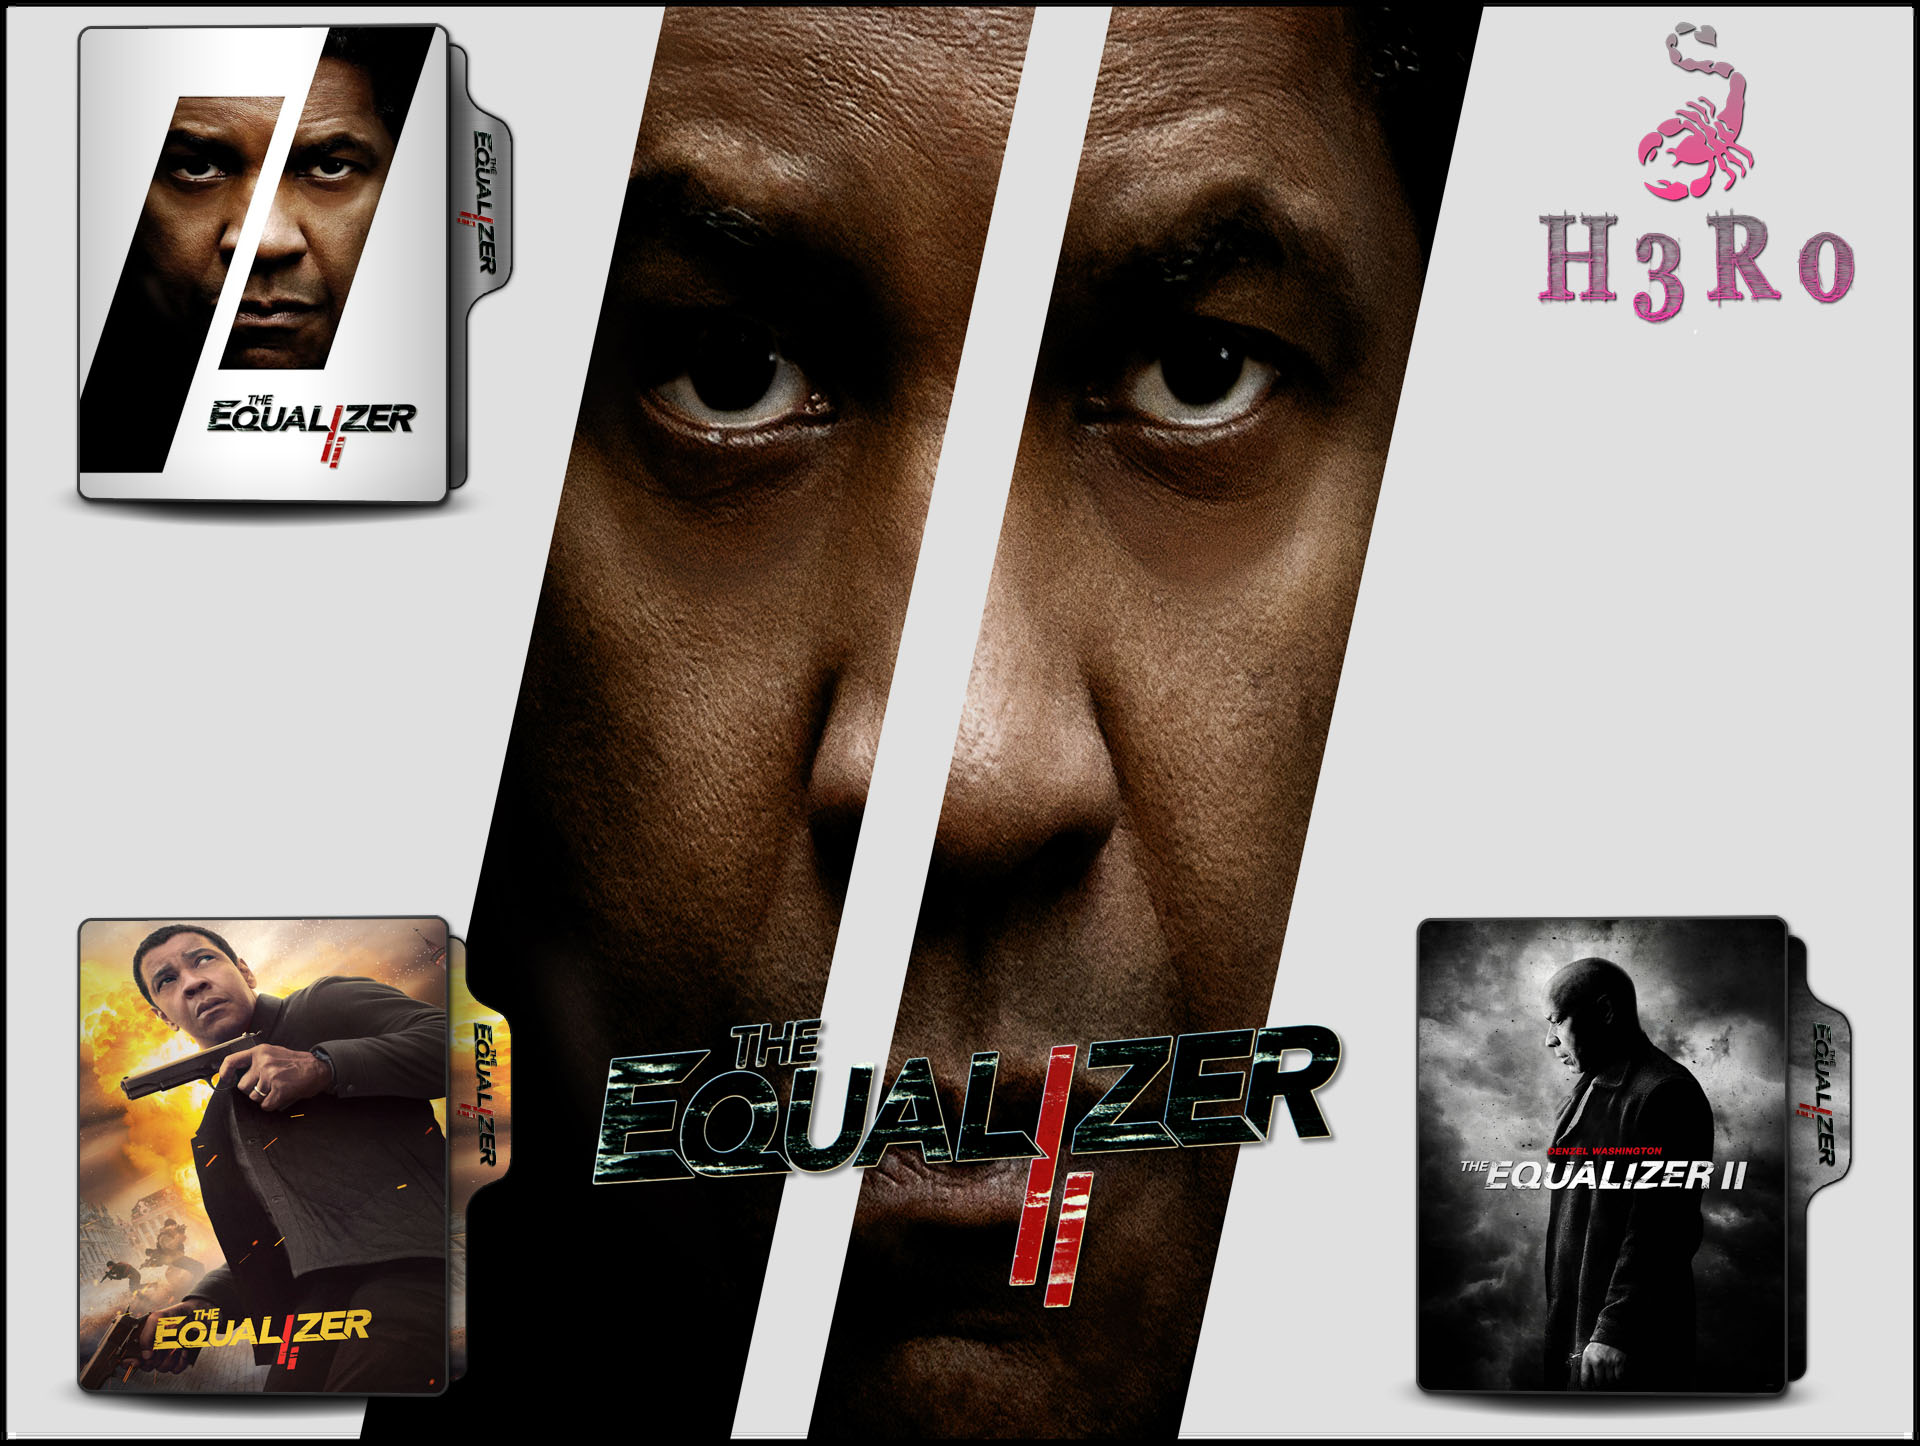 The Equalizer 2 2018 Folder Icon Pack By Omidh3ro On Deviantart